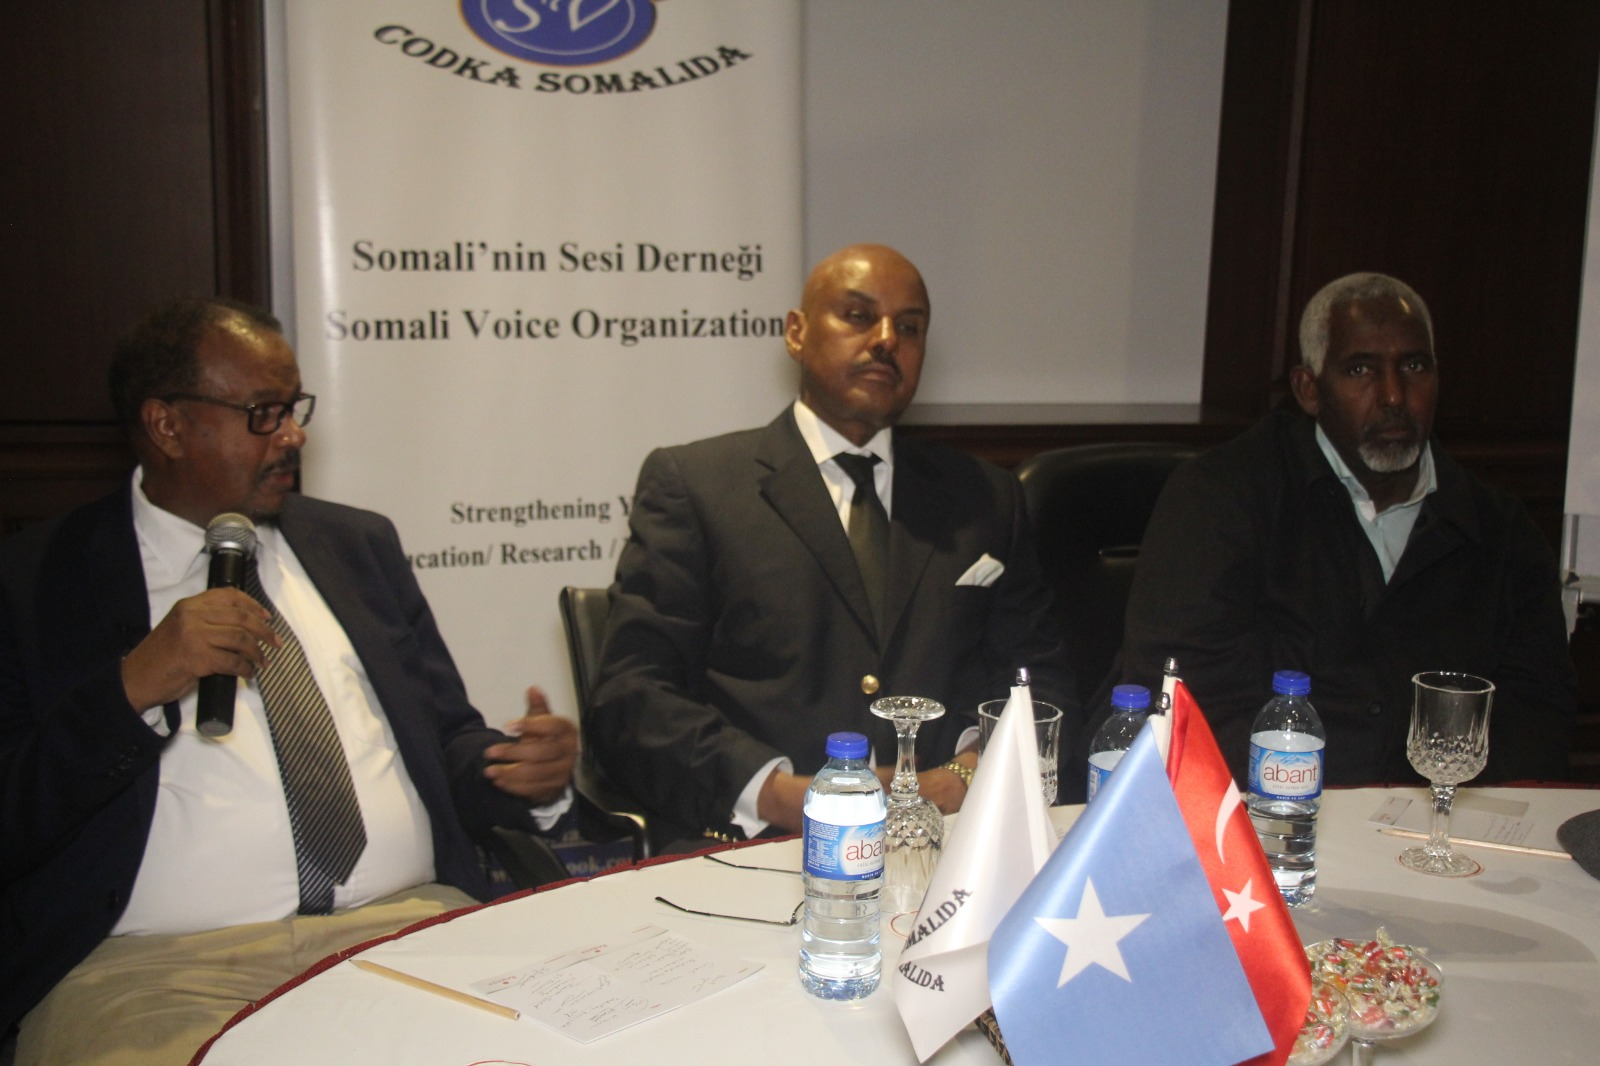 Somali Voice Organization organized a discussion panel